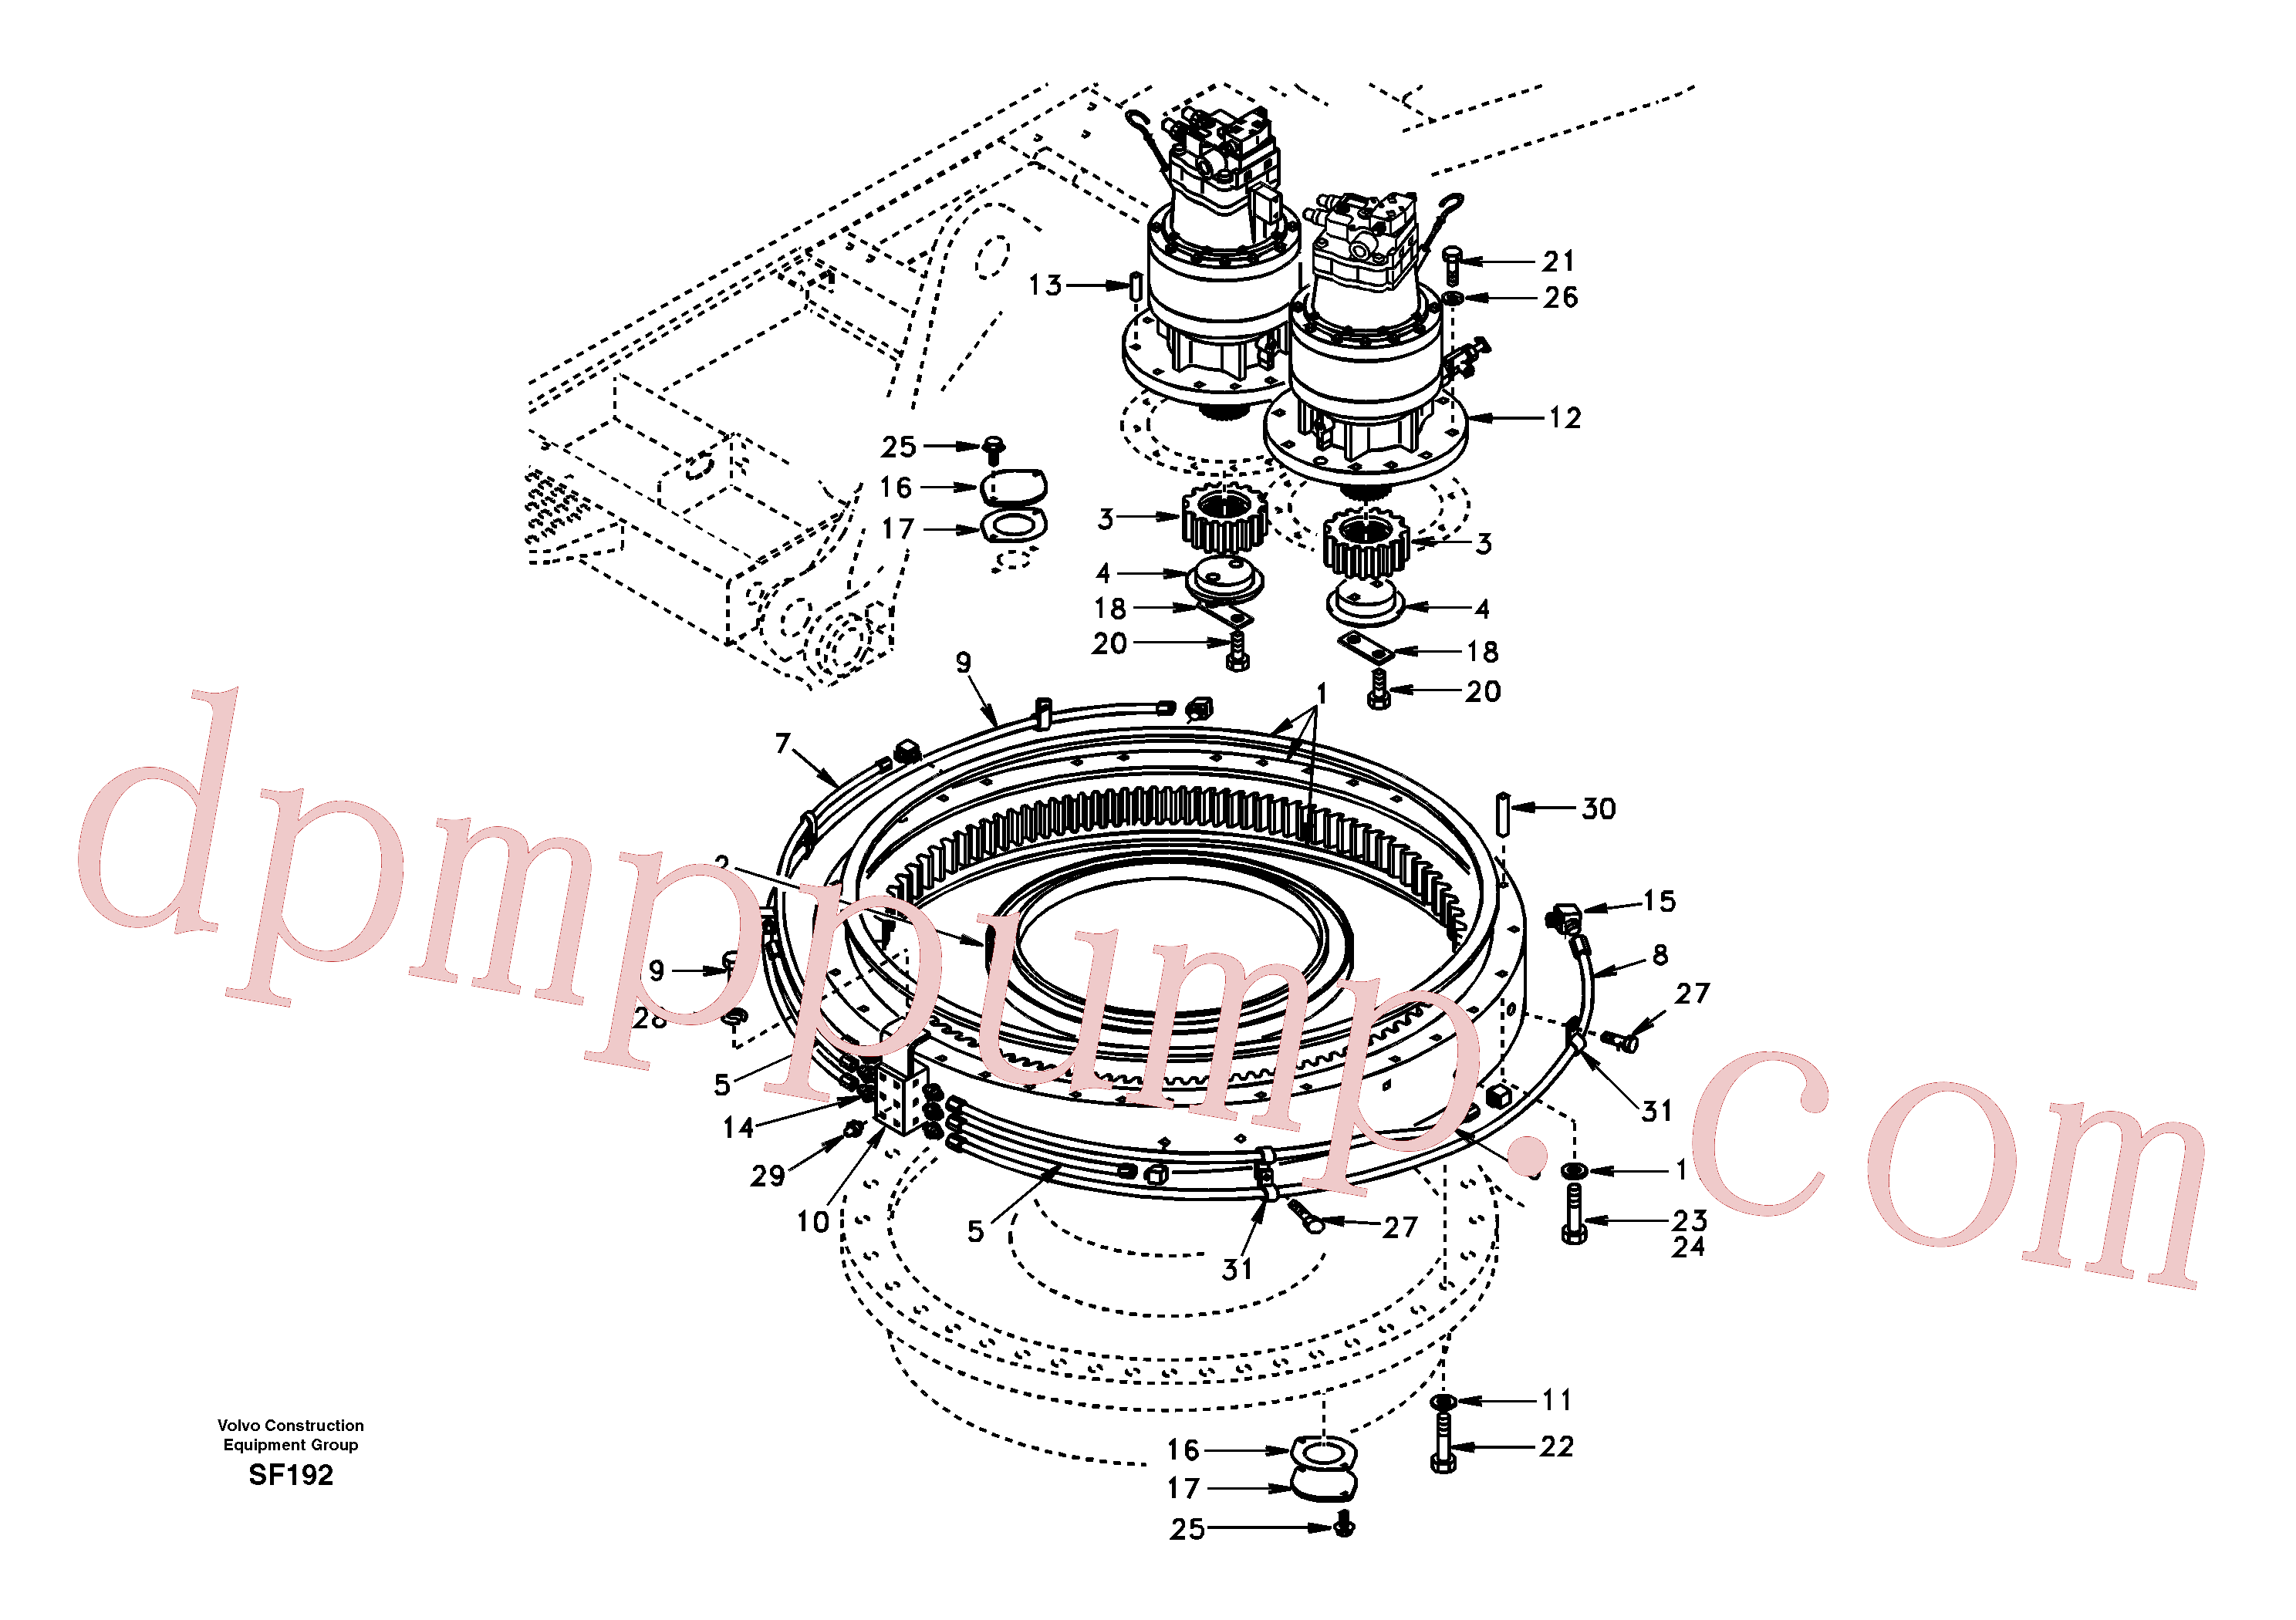 SA1155-01230 for Volvo Swing system(SF192 assembly)